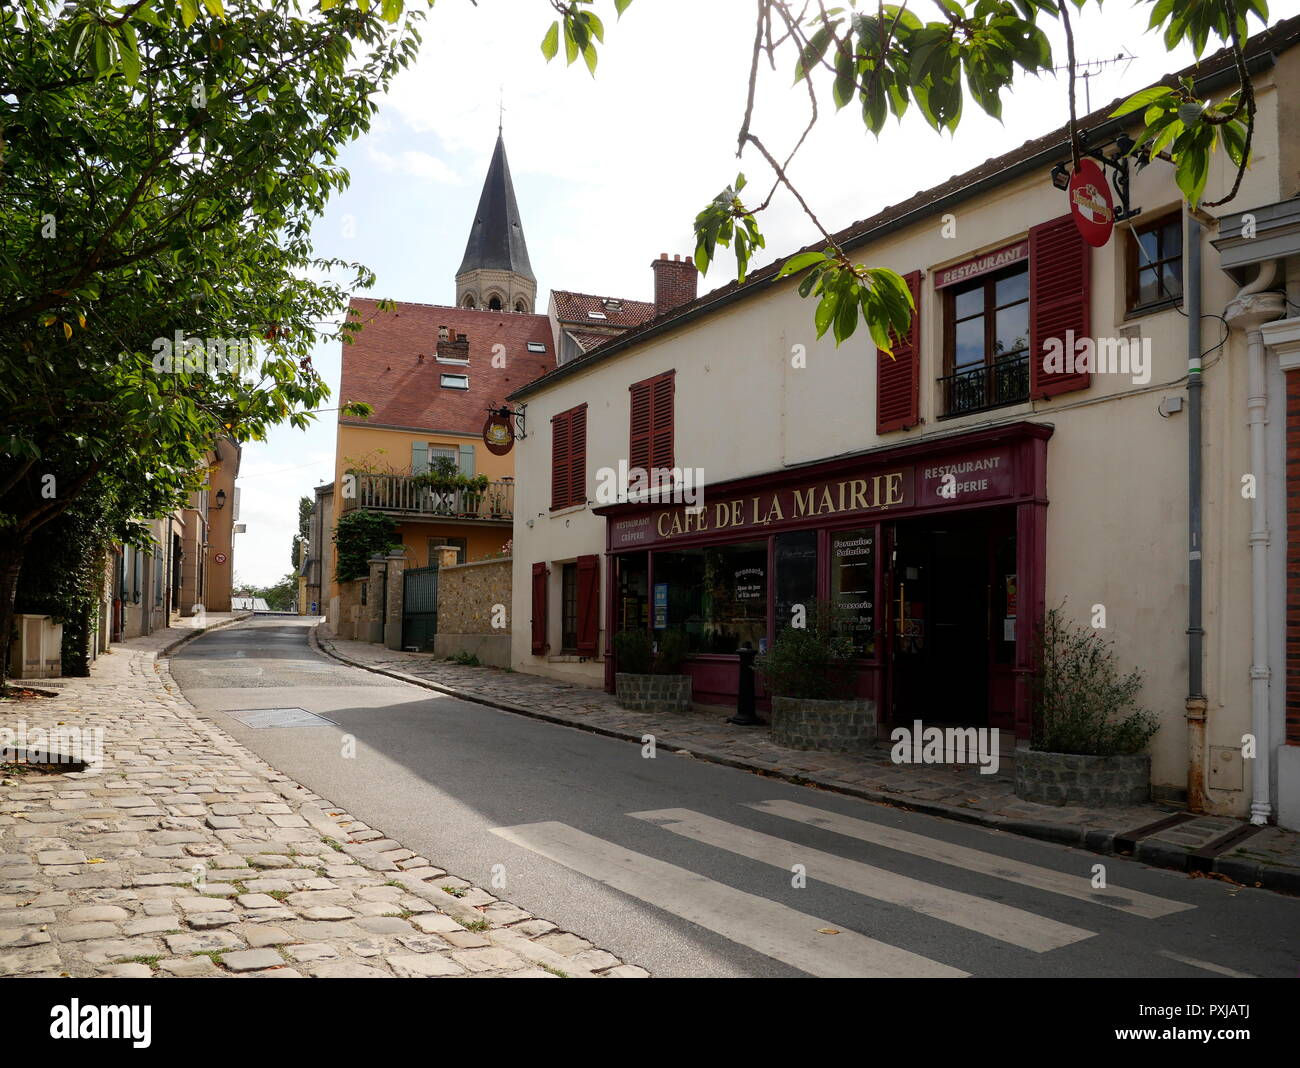 AJAXNETPHOTO. LOUVECIENNES, FRANCE. - CHURCH - EGLISE SAINT-MARTIN - DOMINATES THE CENTRE OF THE VILLAGE. FOREGROUND RIGHT IS THE CAFE DE MARIE.